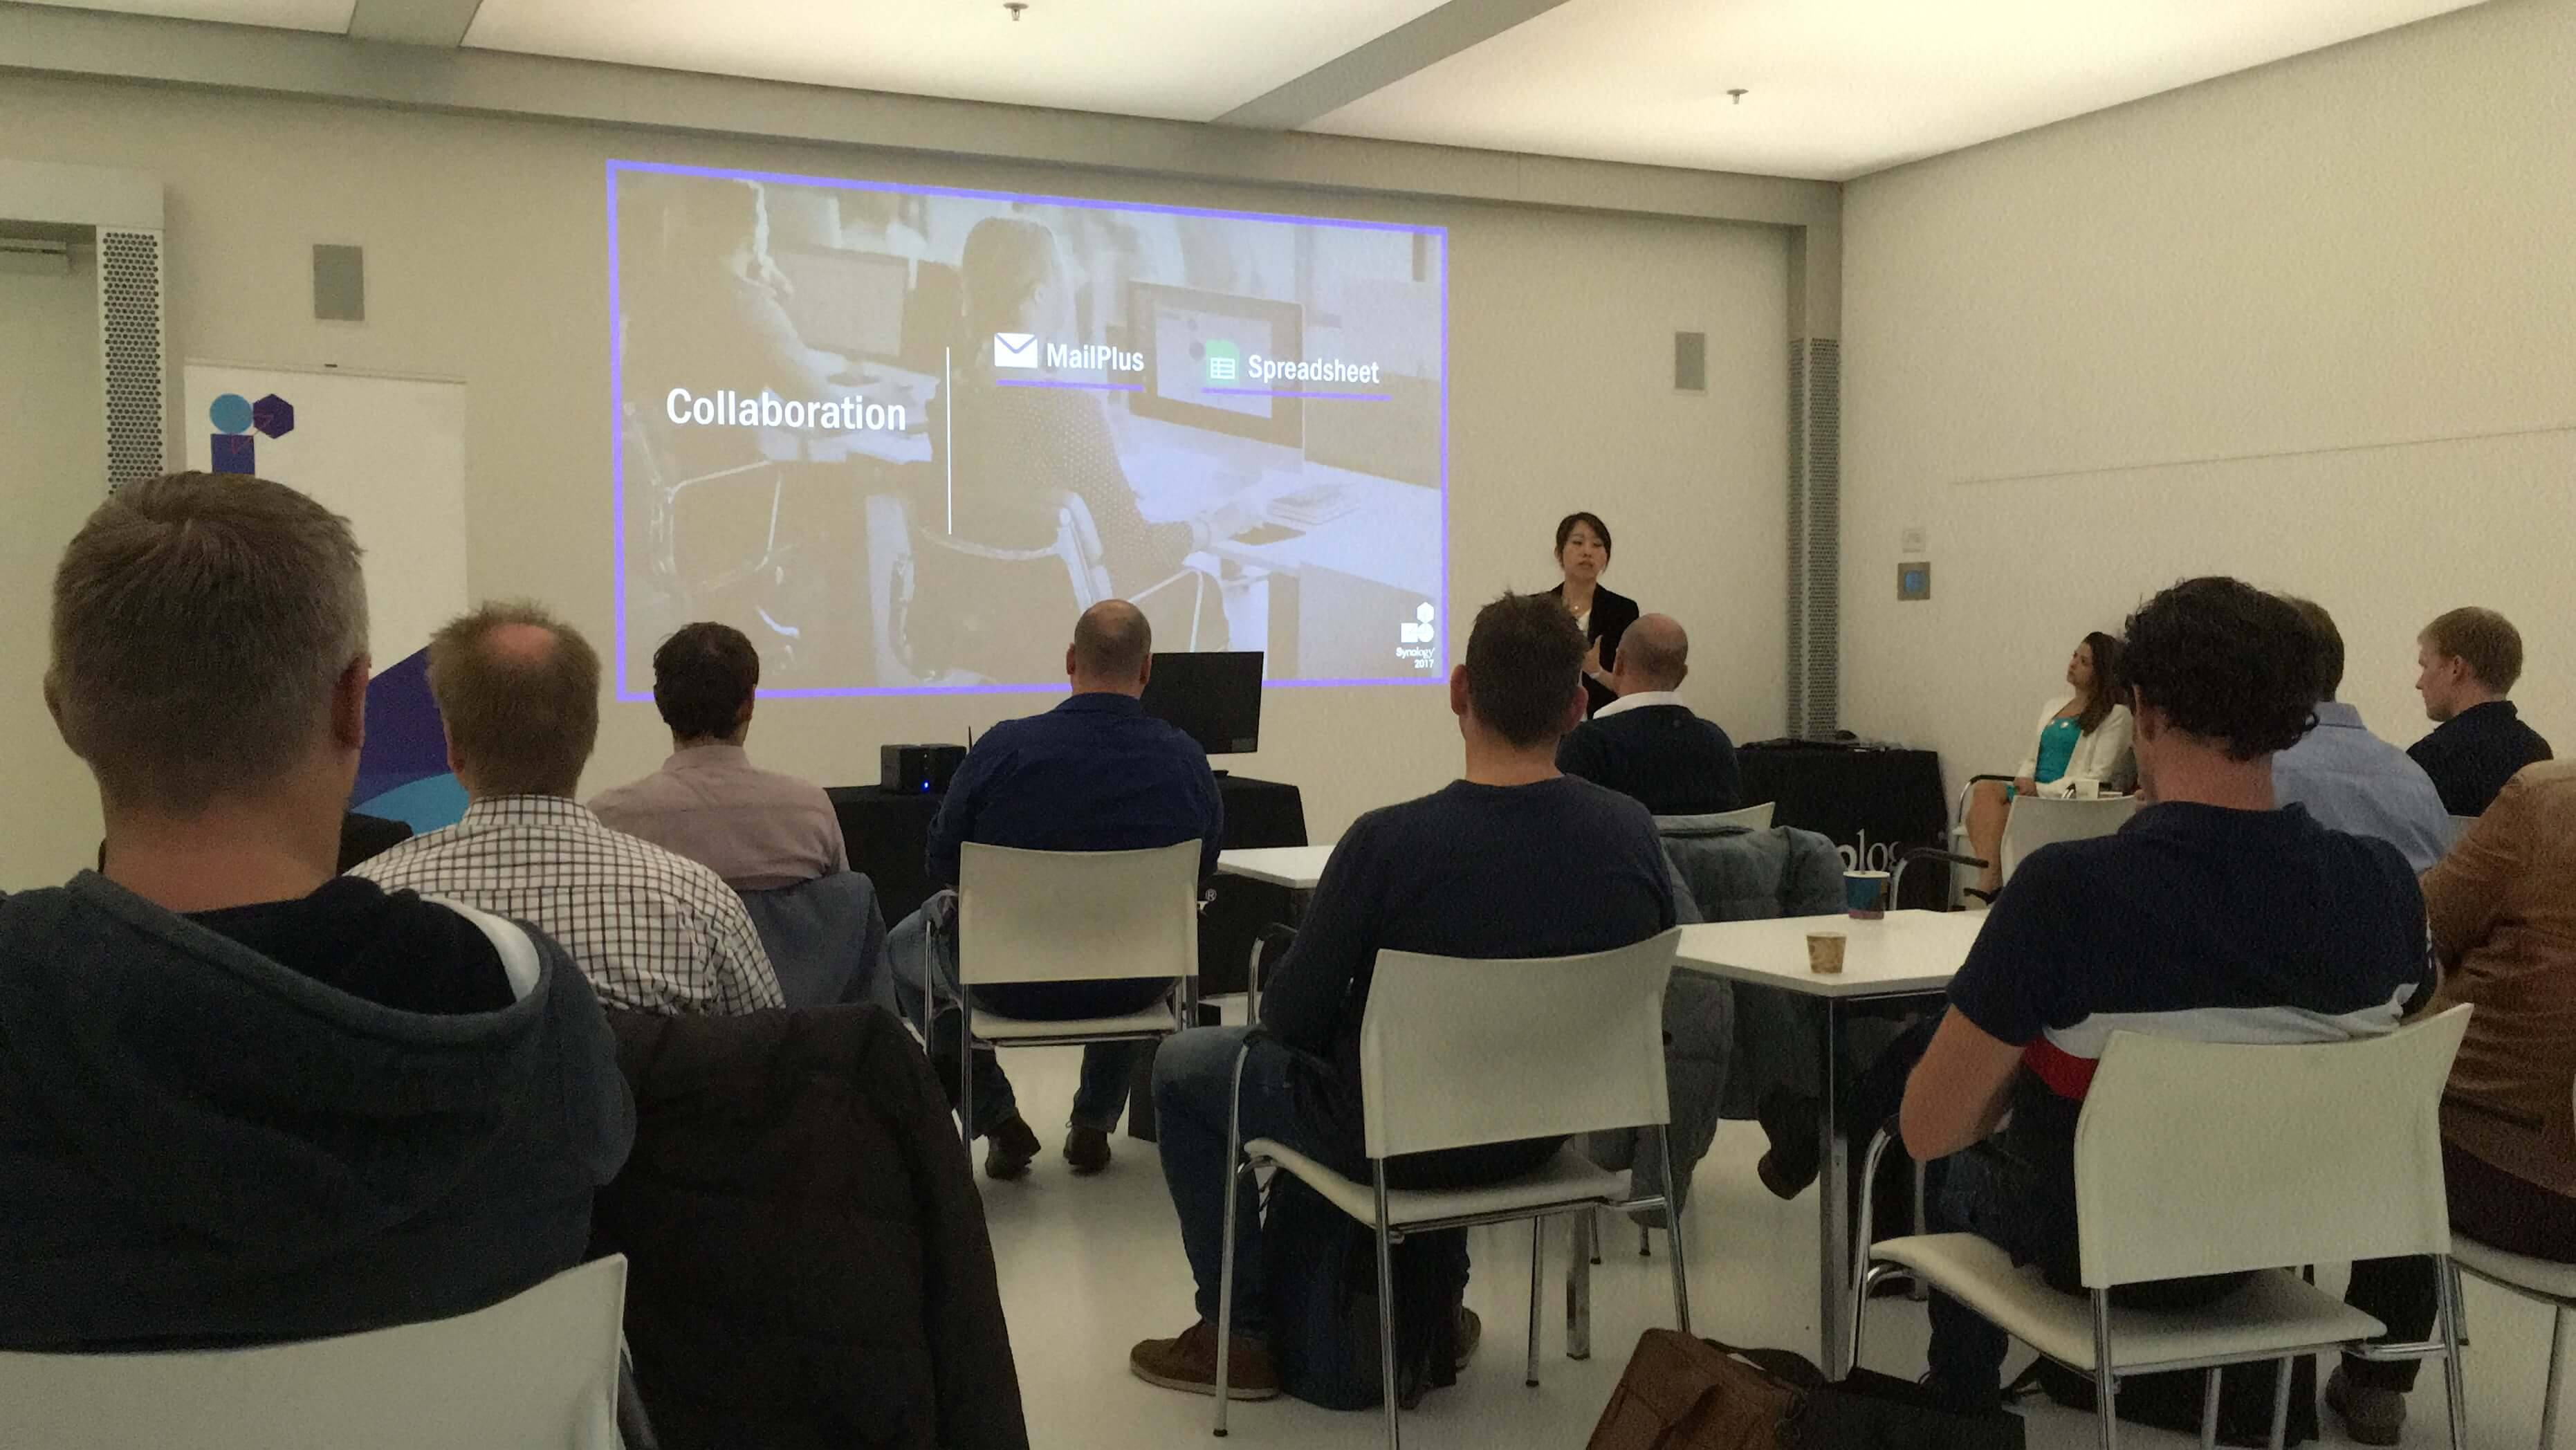 Event Management: Synology in Utrecht & Paris - the most